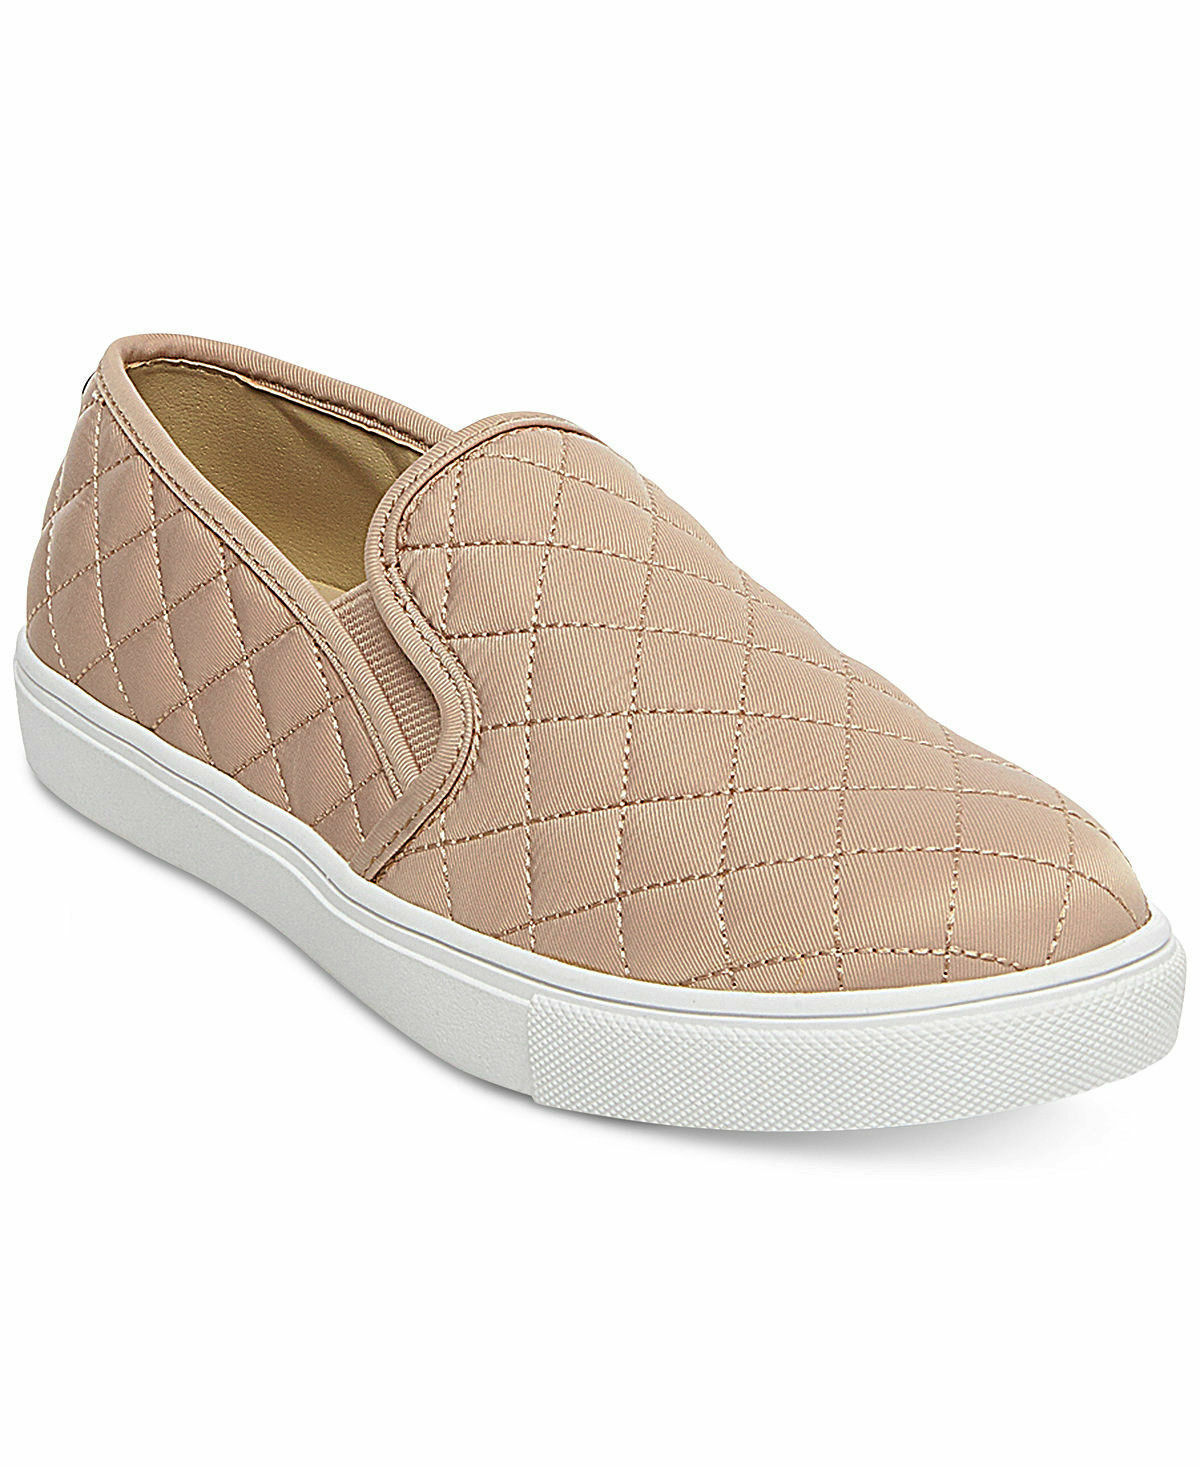 Steve Madden shoes ECNTRCQT Quilted Sneakers Slip-On Casual Women bluesh Size 7.0